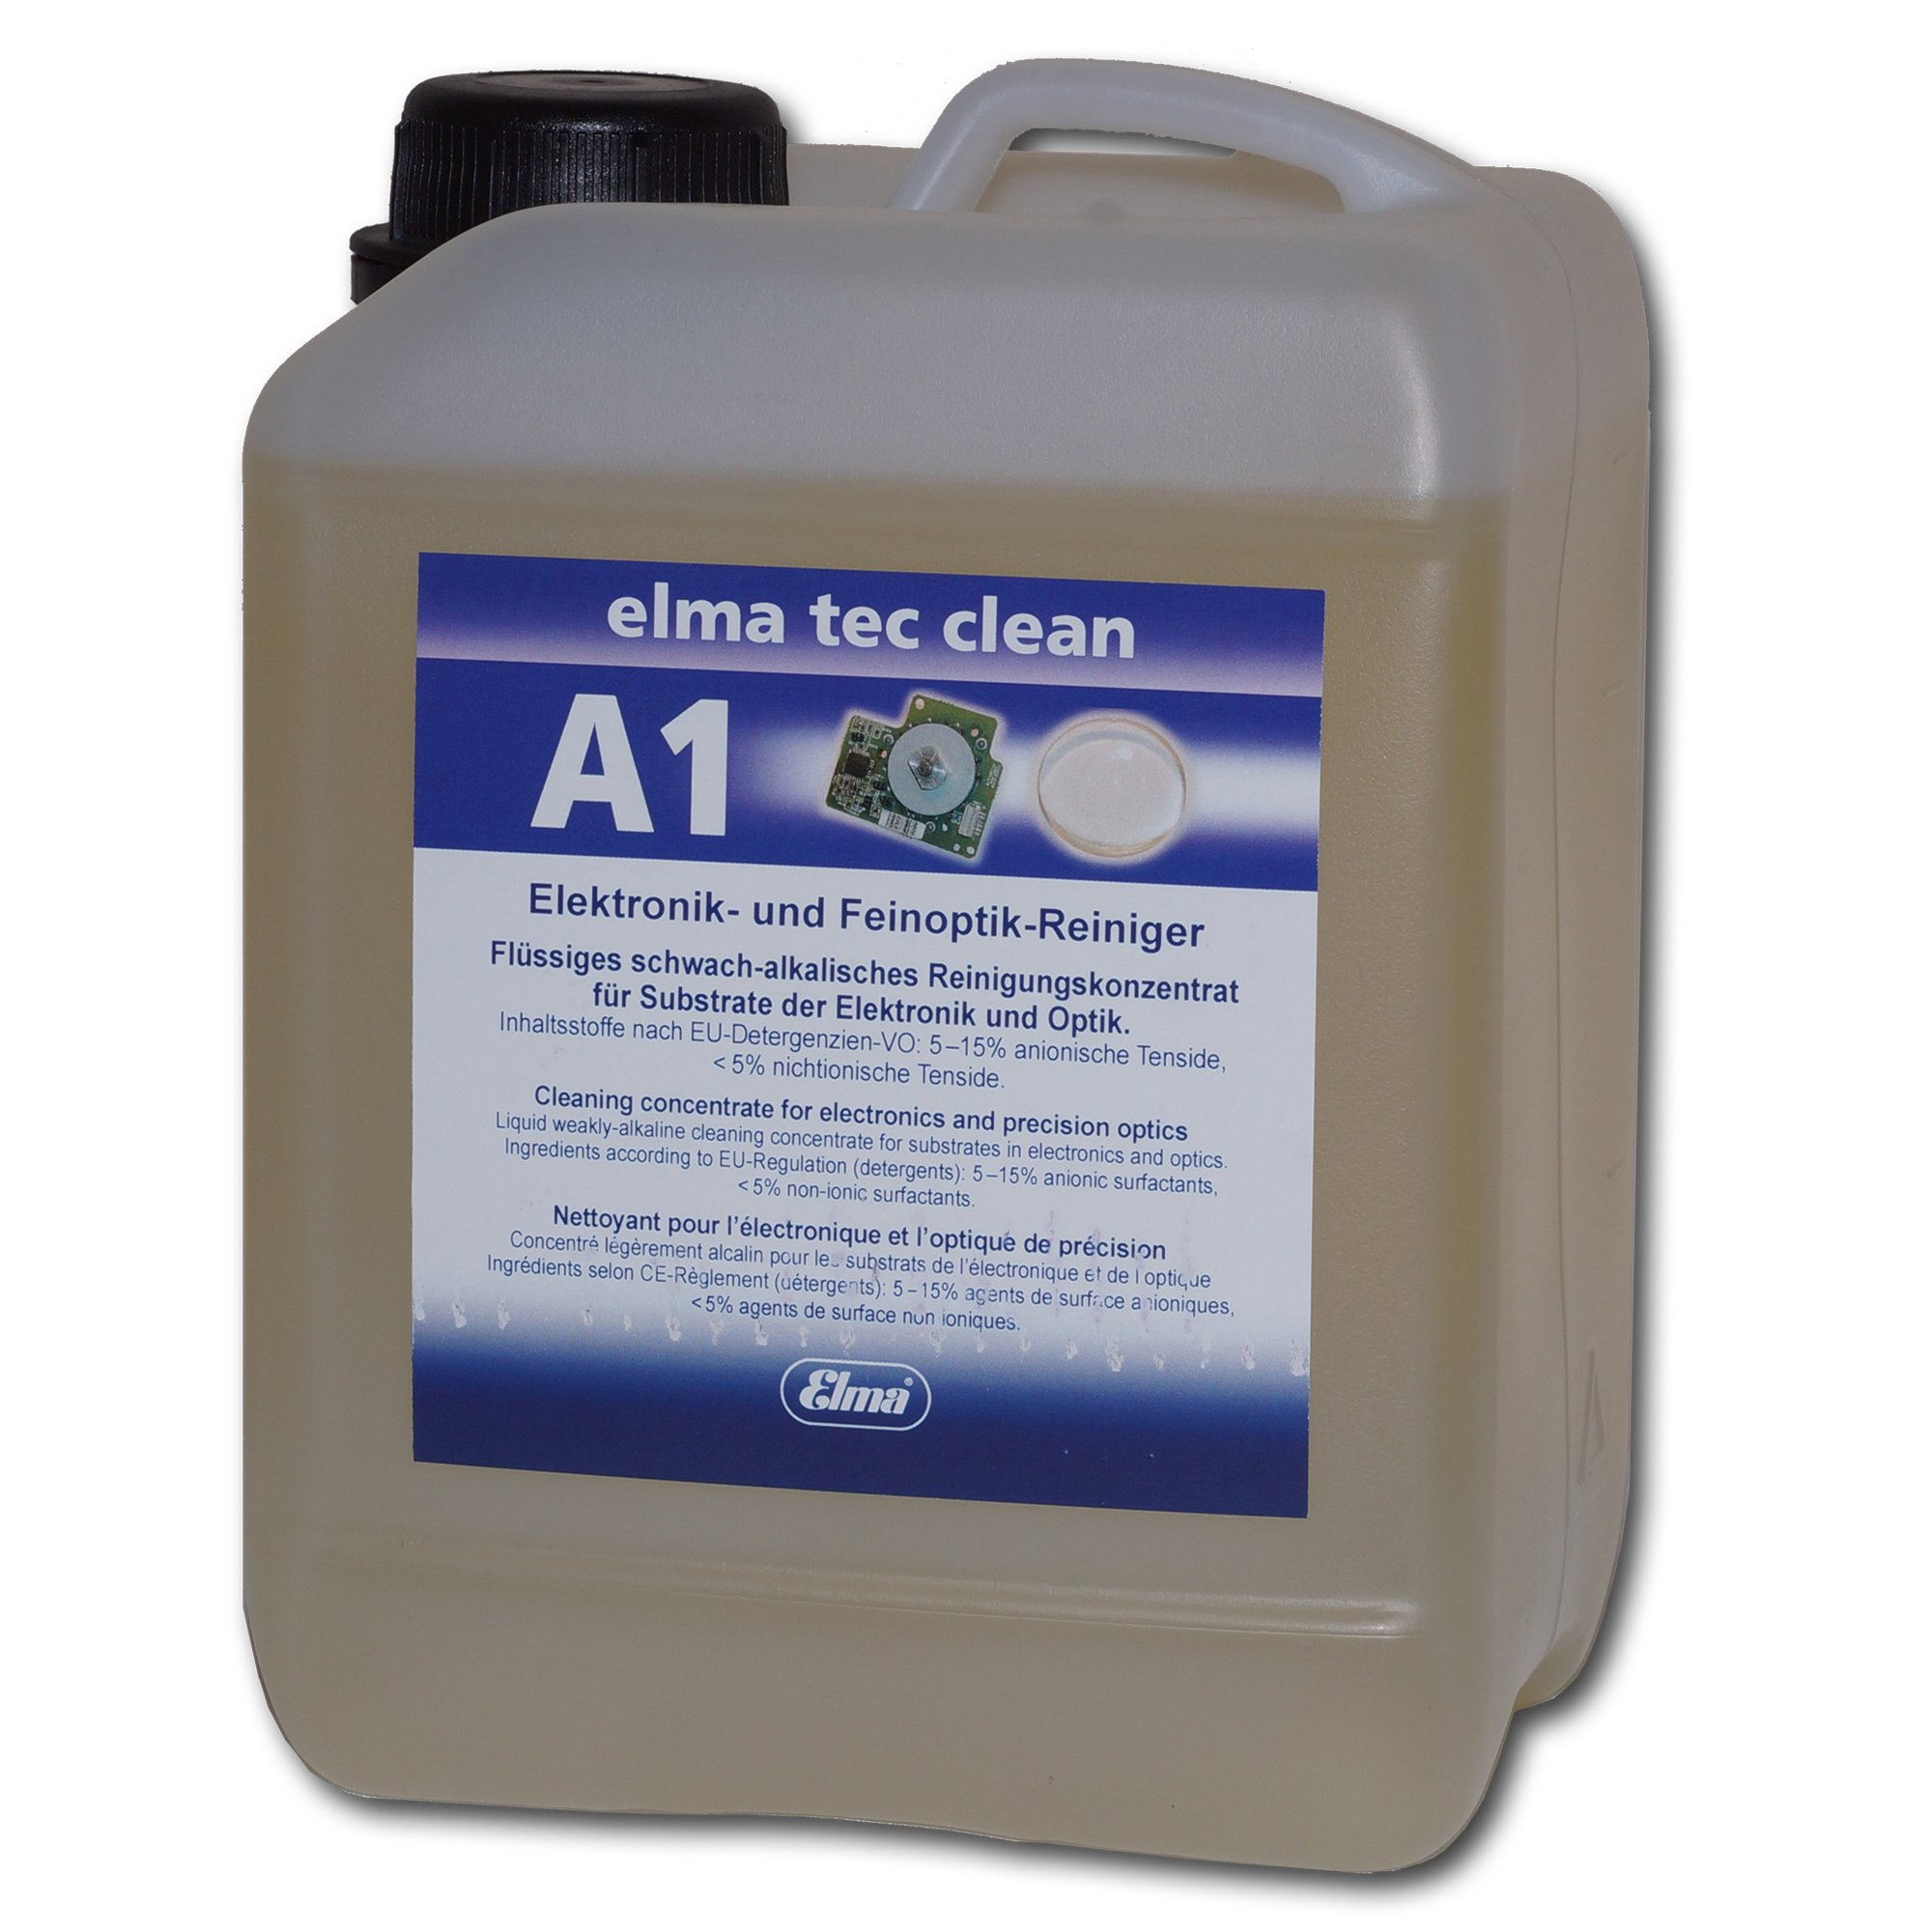 Elmasonic 800 0102 Elma TEC Clean A1 Ultrasonic Cleaner Solution Concentrate for Electronics and Optics- Powerful Cleaning Fluid for Industrial Use by Elmasonic